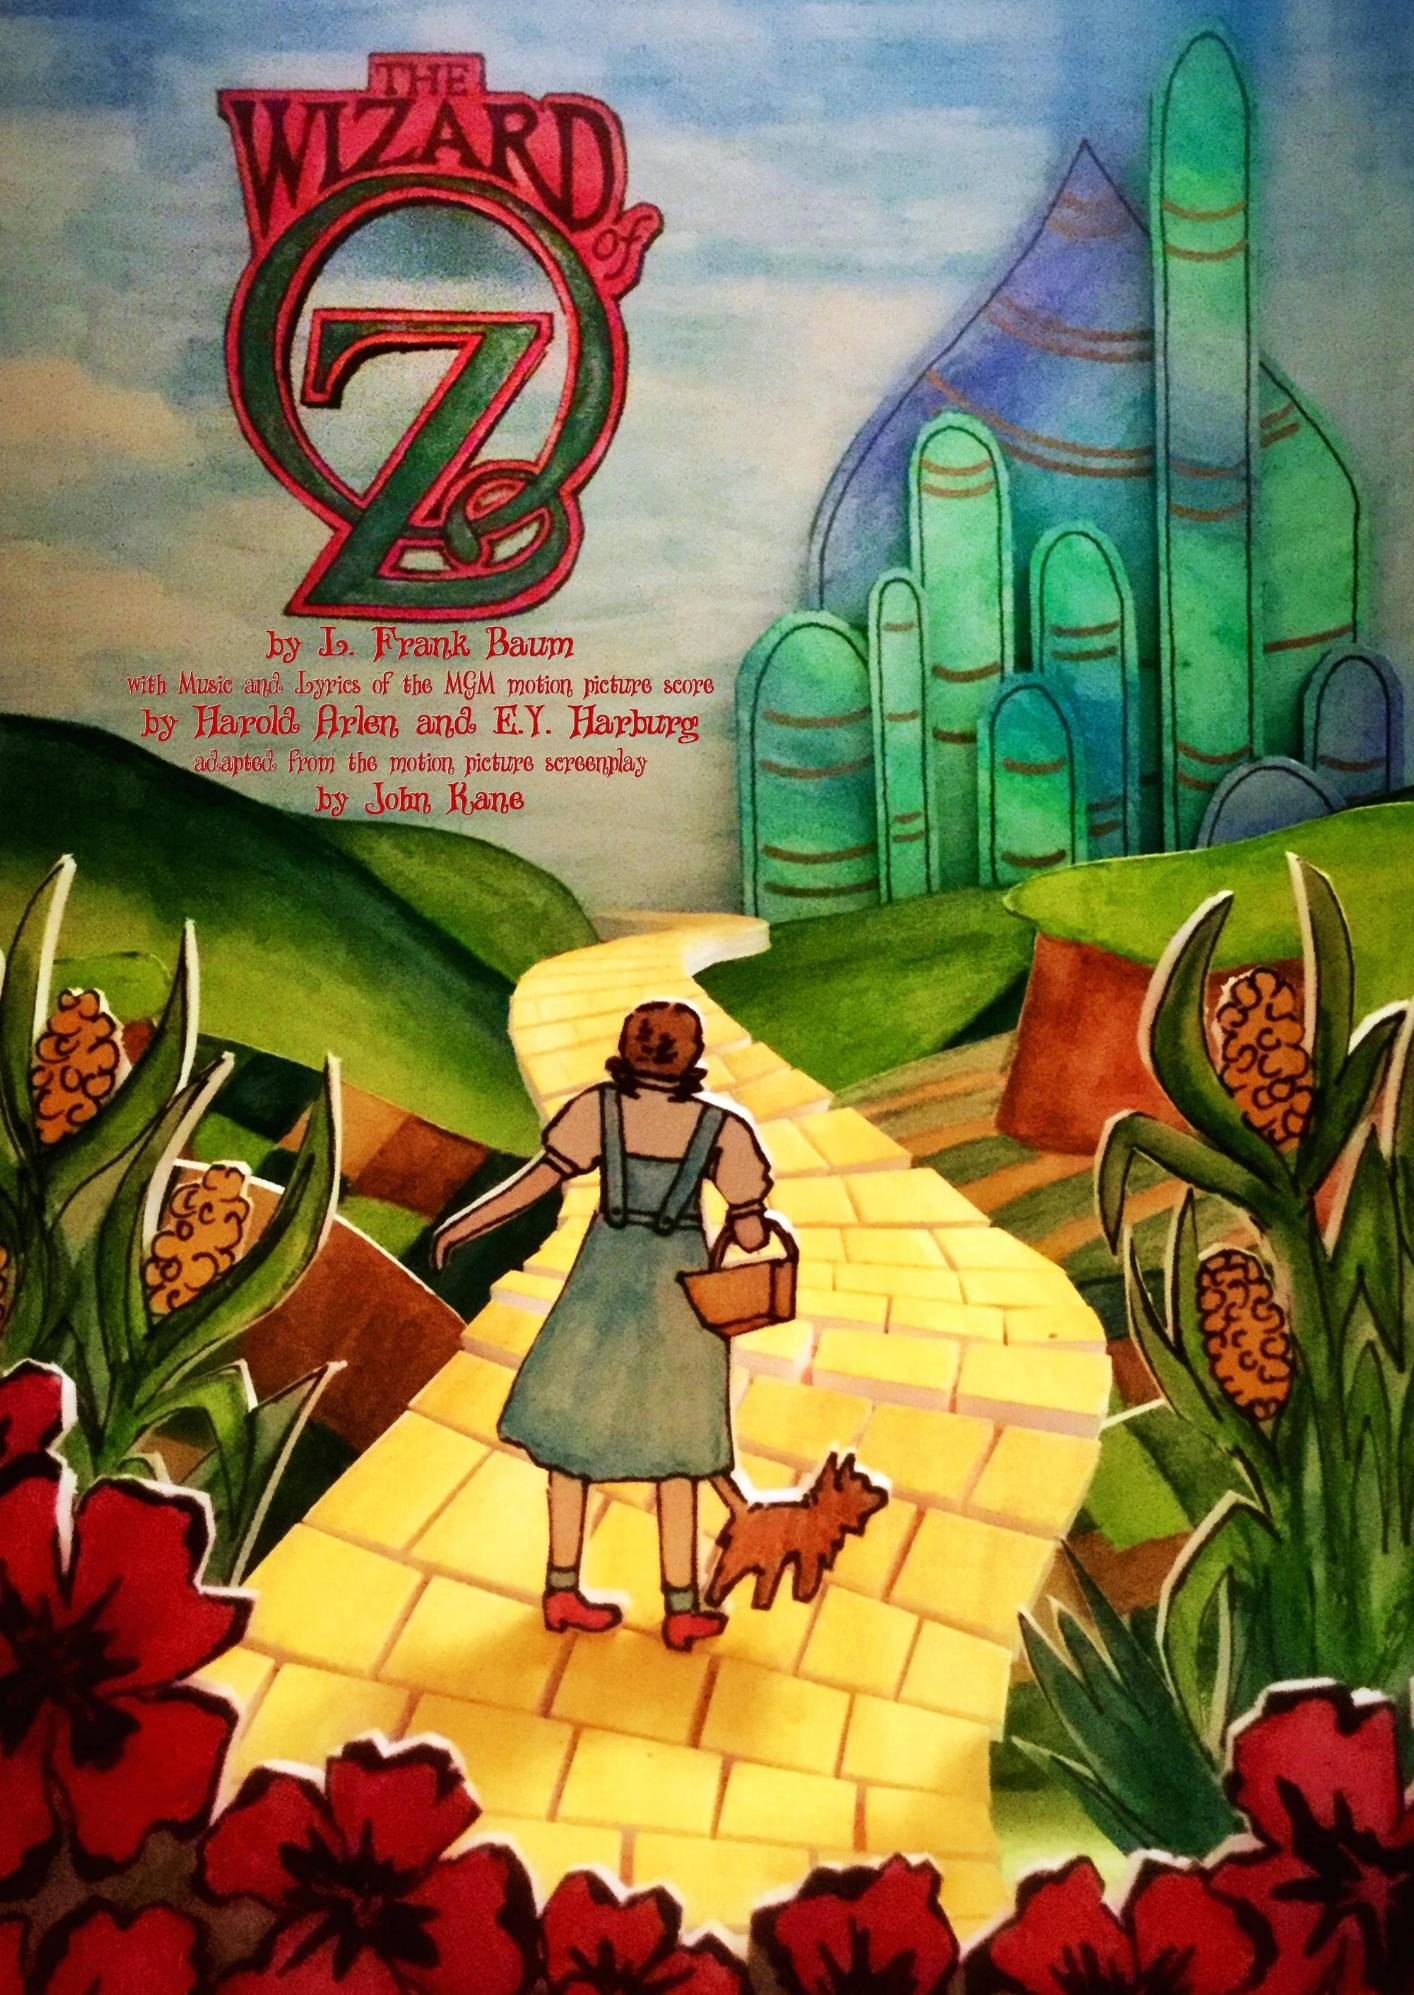 The Wizard of Oz poster.jpg